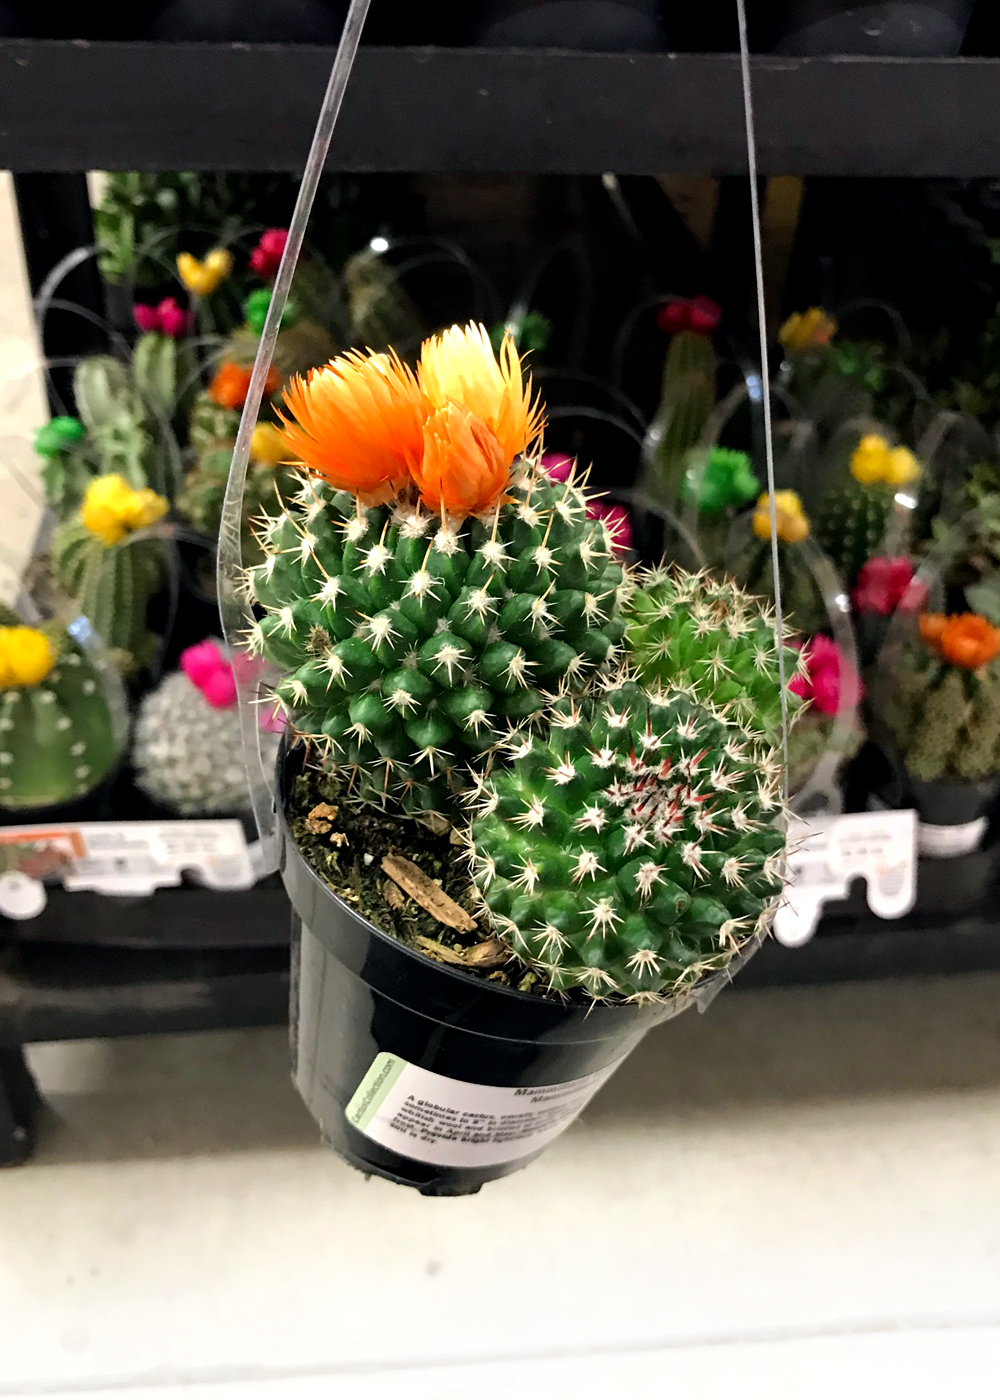 cactuses are a great way to add some green to your home this winter